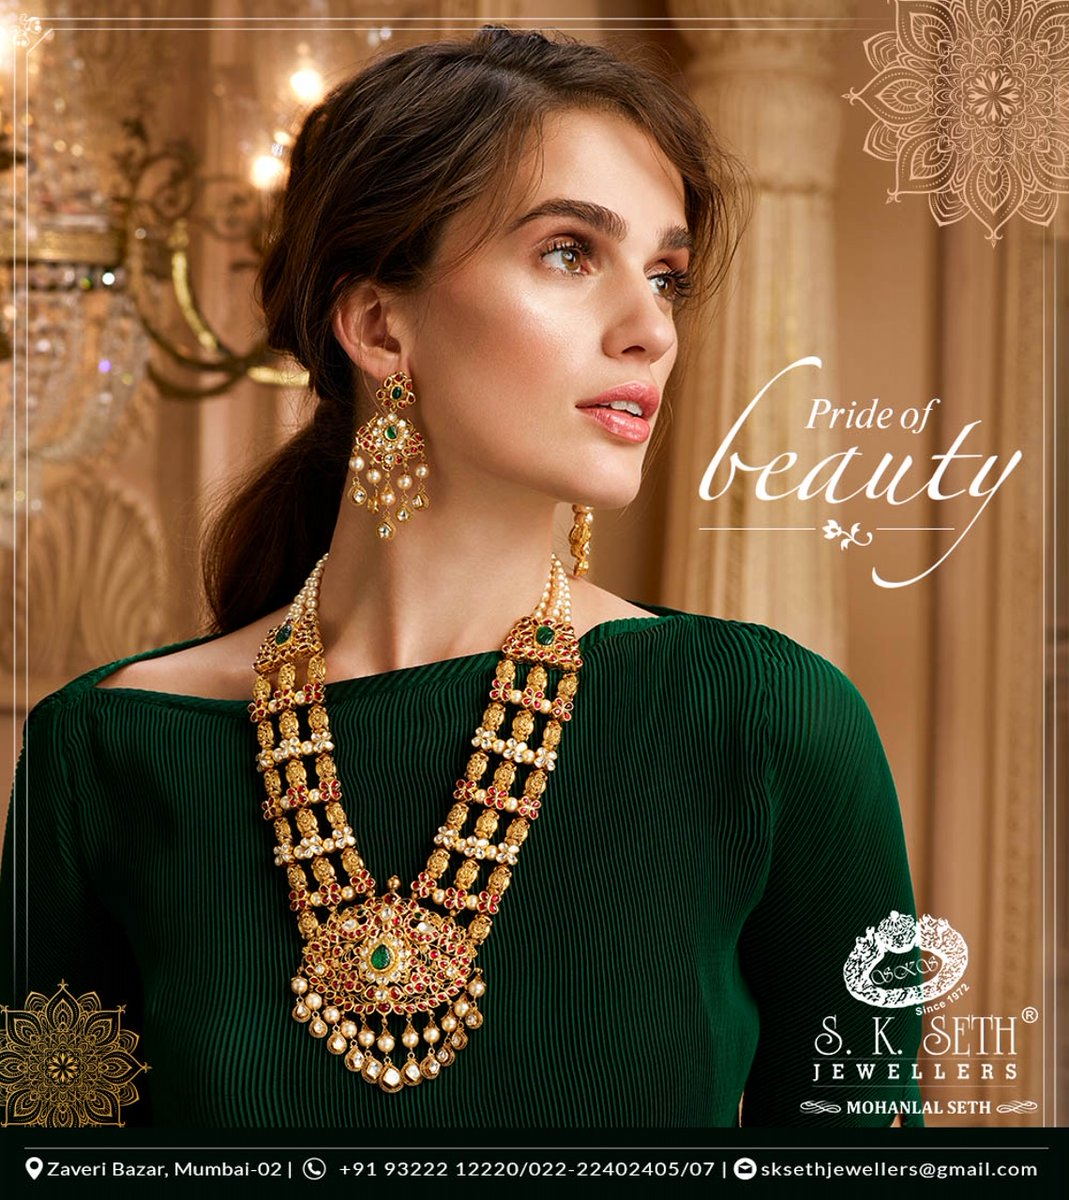 A combination of gold and auspicious colours. A balance of deep details and perfect highlights. Book an appointment today and explore the exclusive collection of BRIDAL jewellery at our office. @SethJewellers #tablecutdiamond #indianjewellery #polkijewellery #polki #Iuxuryjewelspic.twitter.com/6uWZnmwbXp